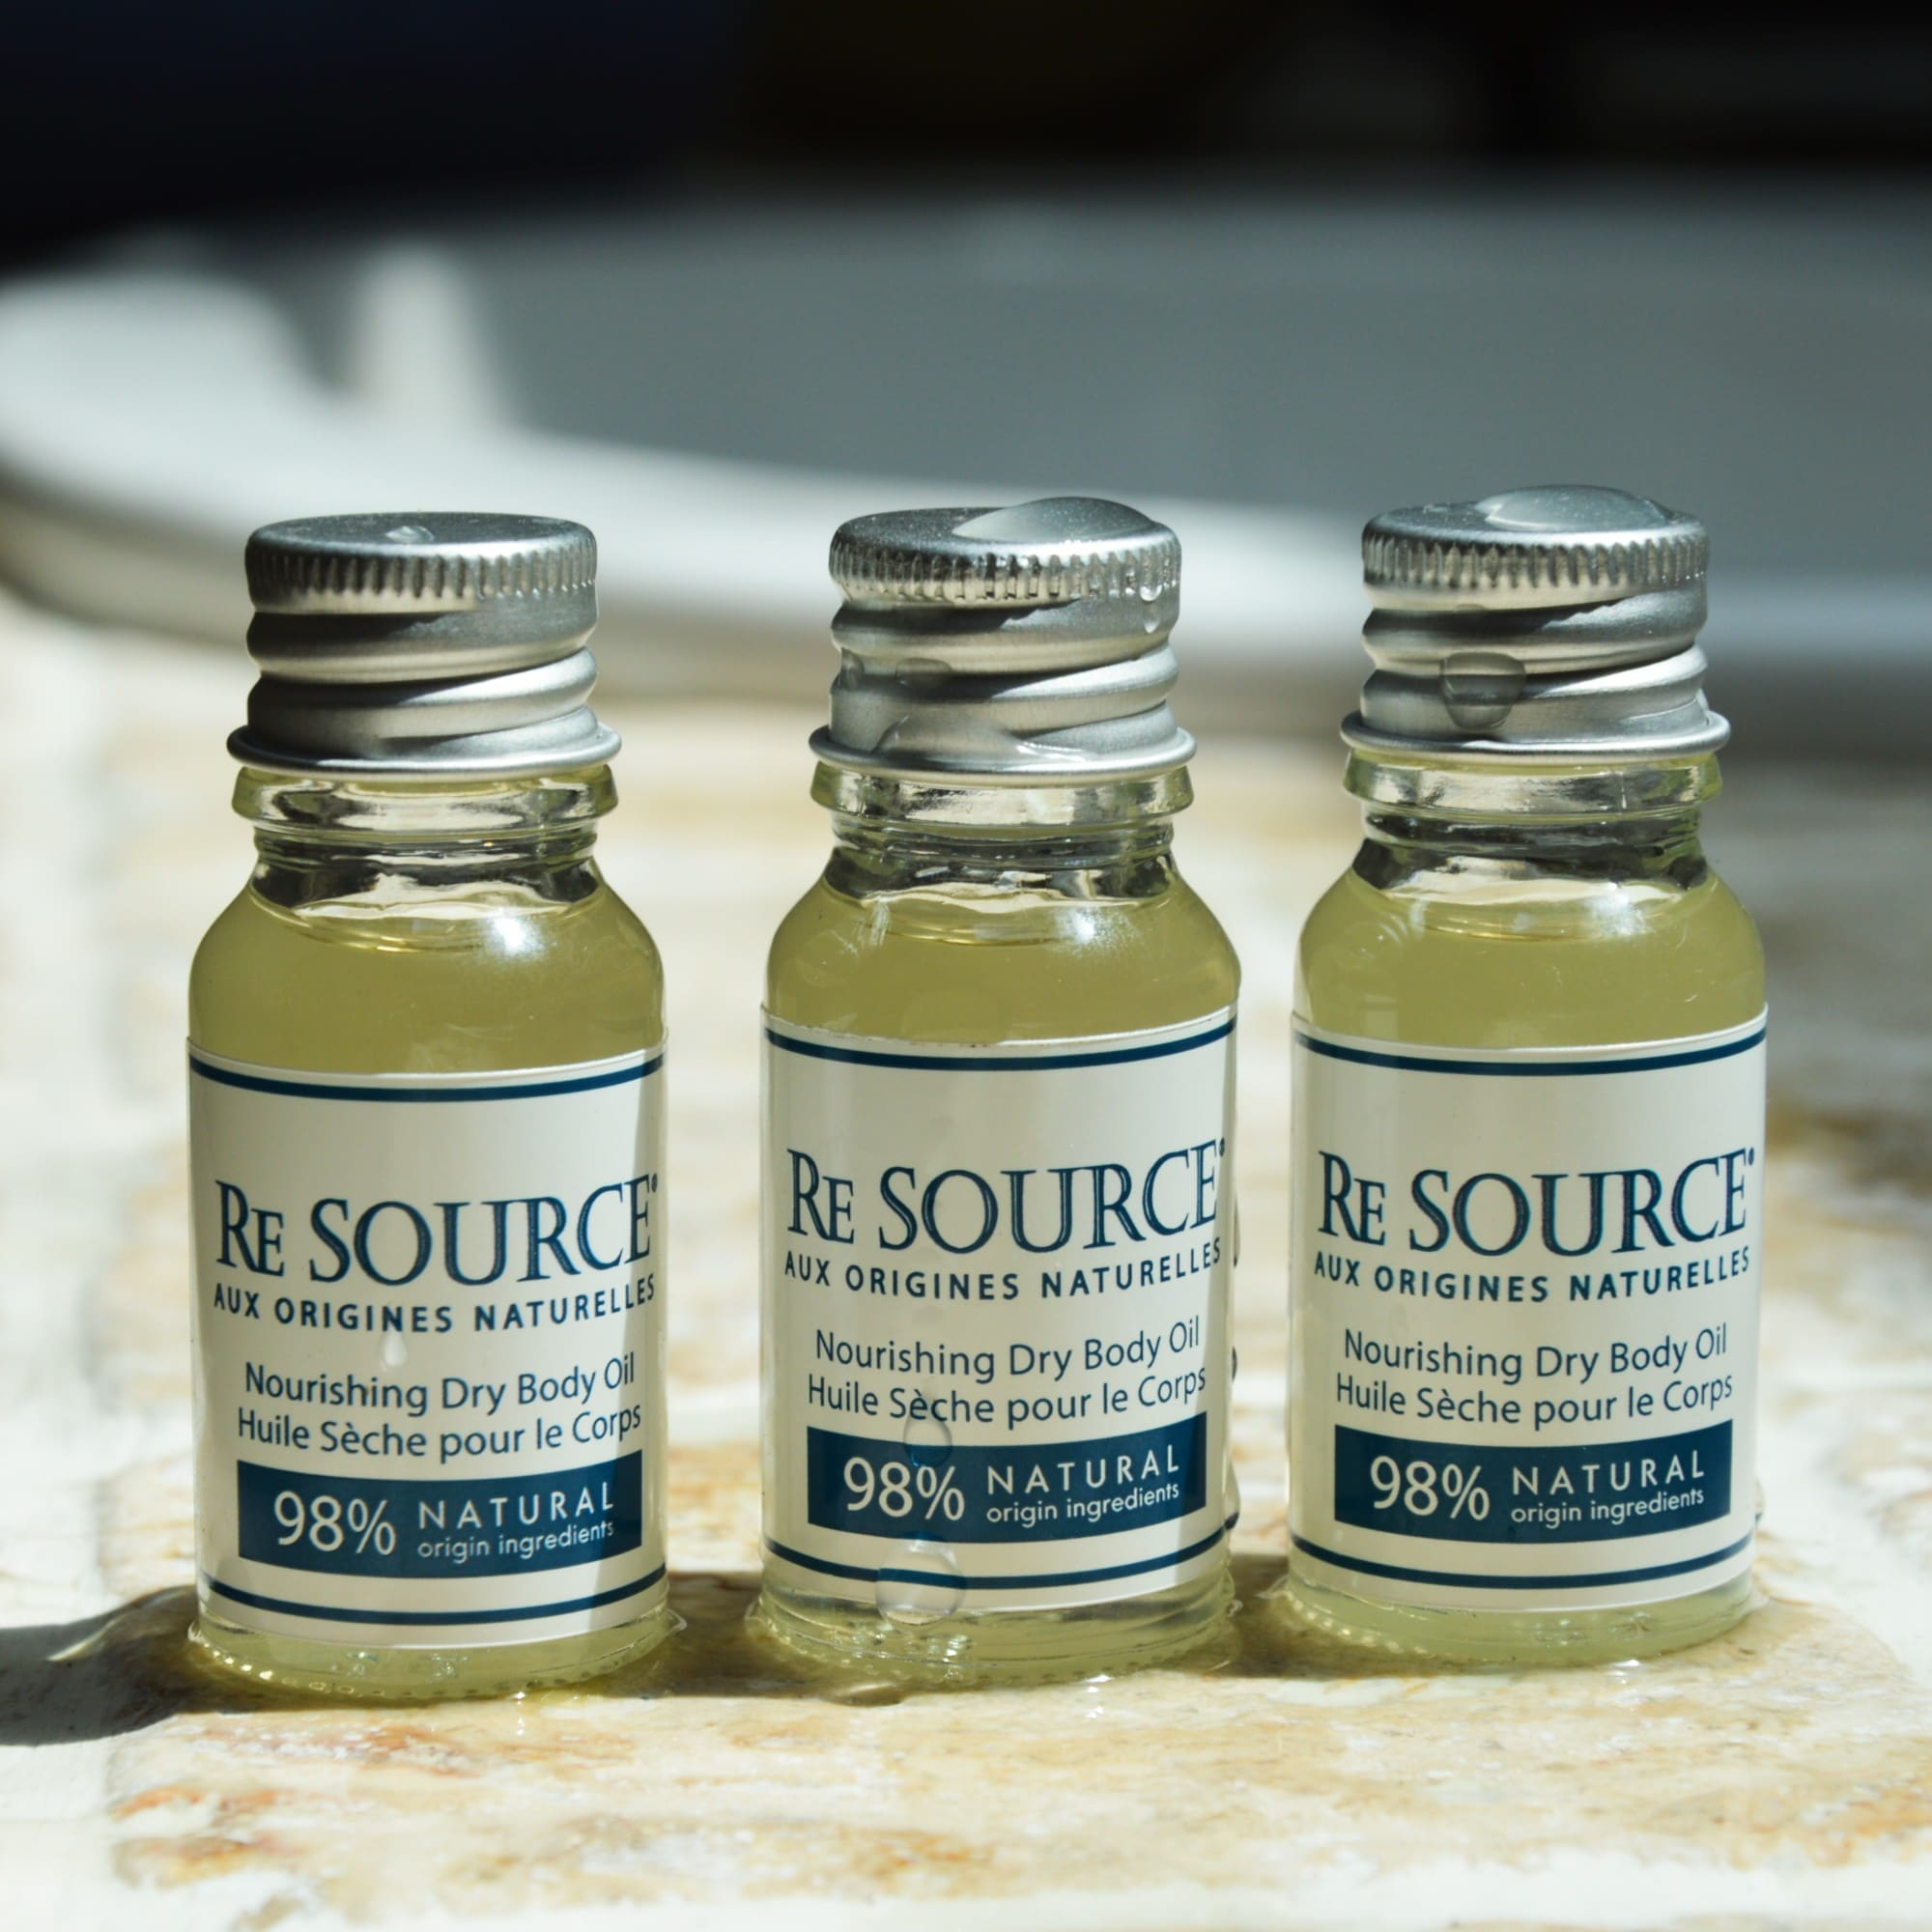 Dry body oils Re SOURCE